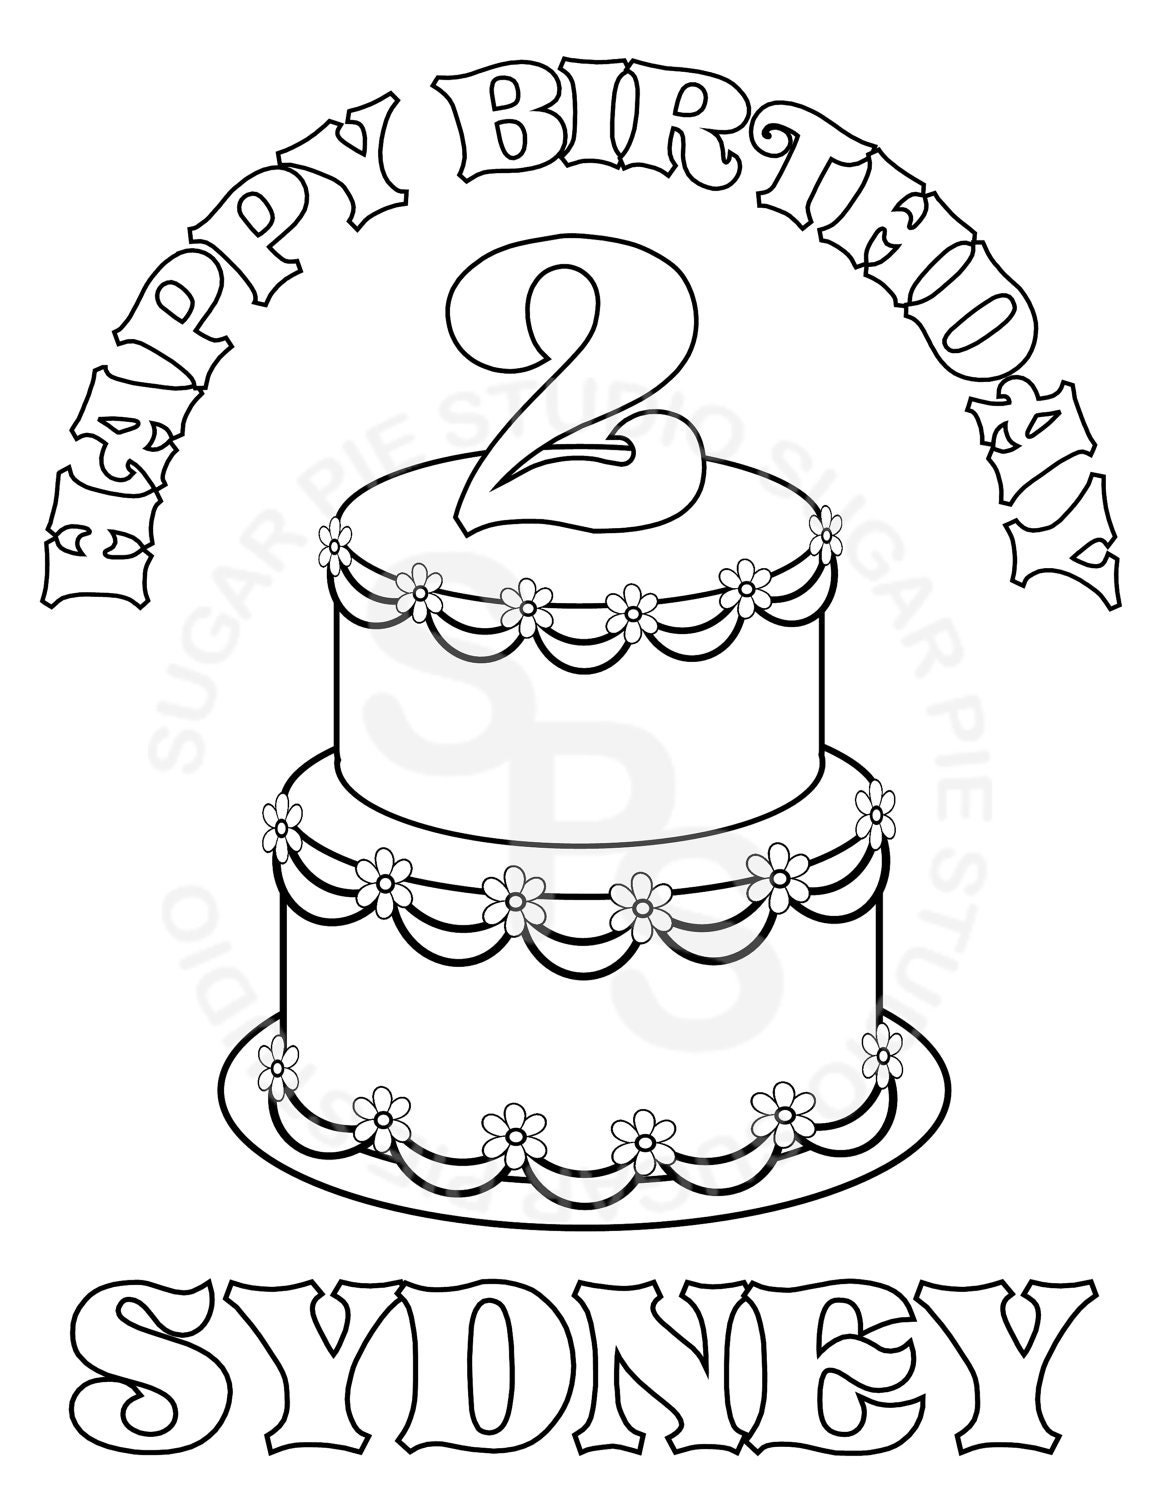 personalized coloring pages - photo#23